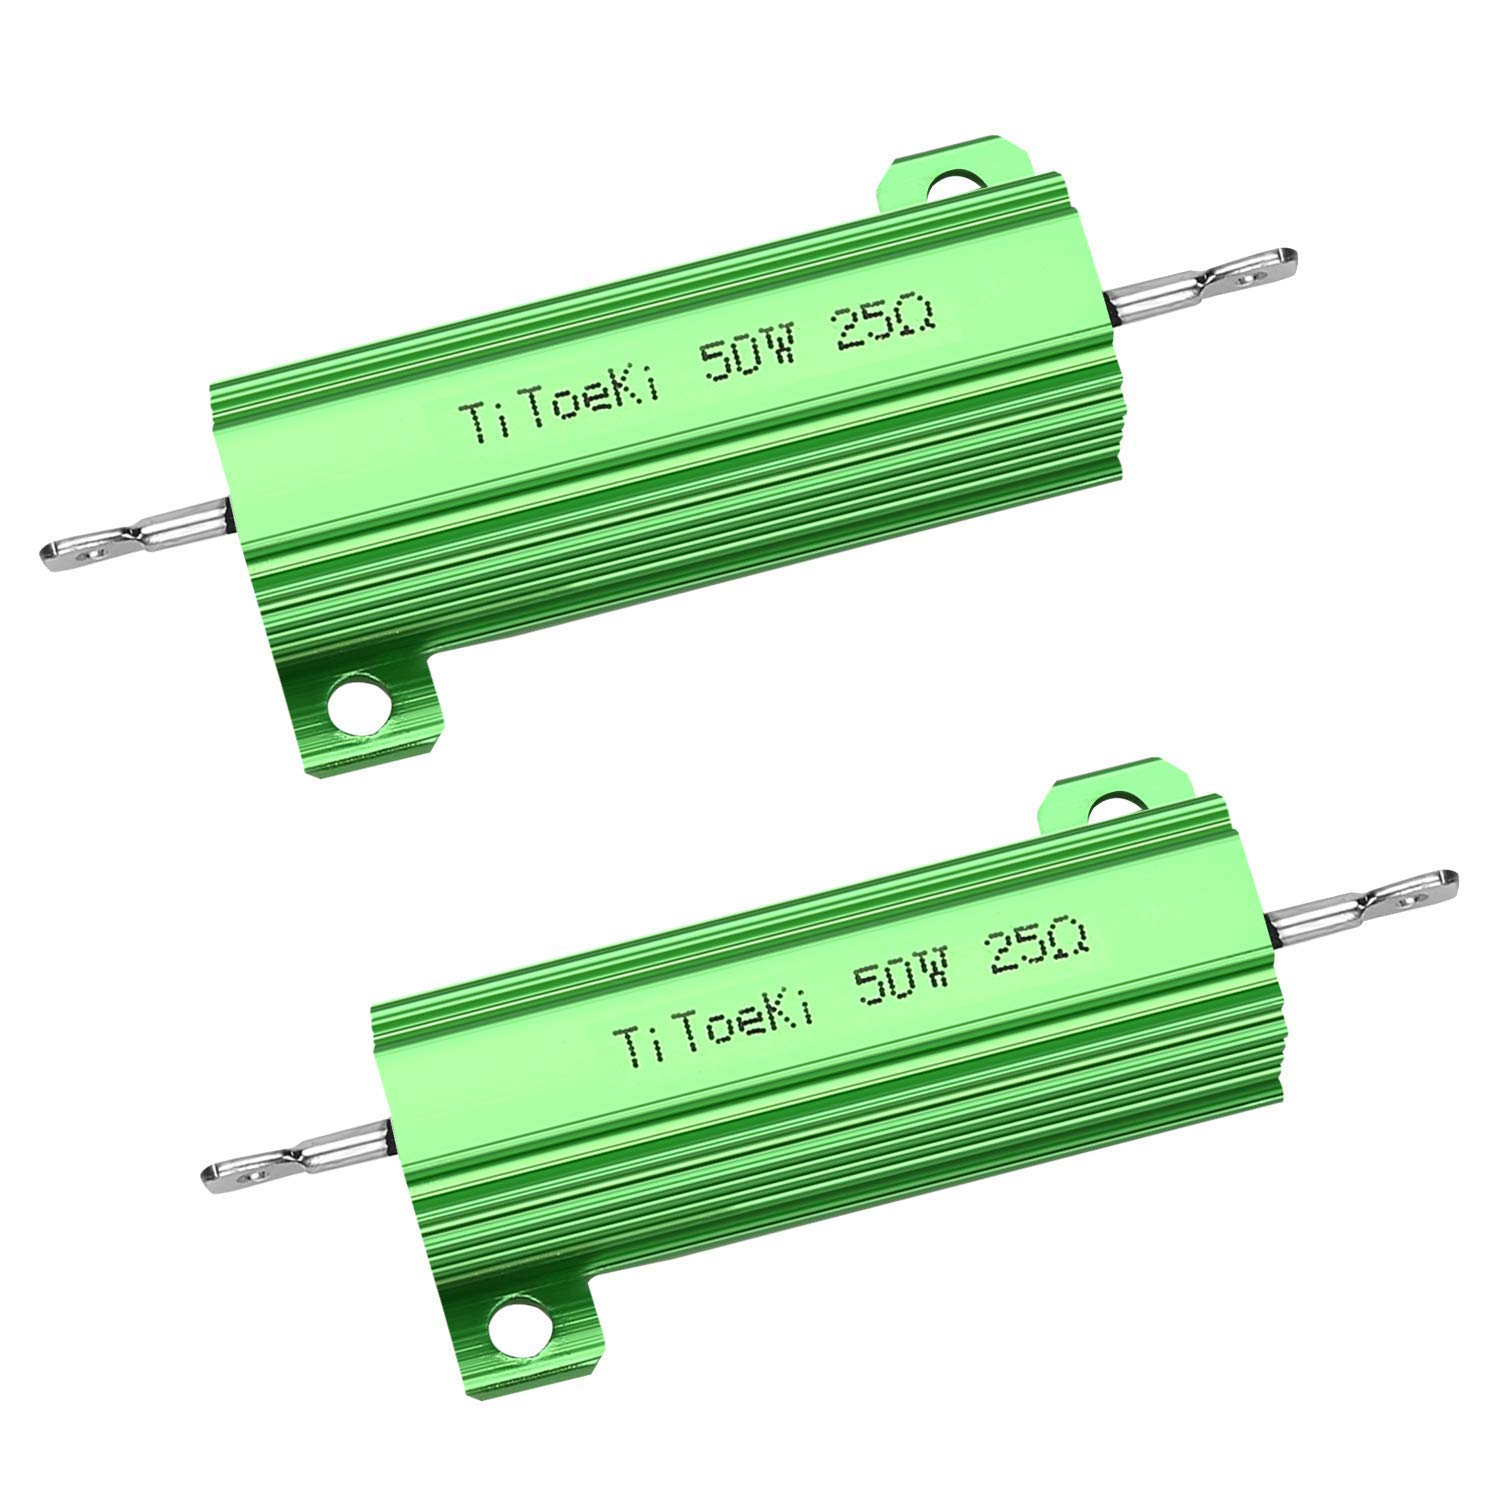 TiToeKi 50W 25 Ohm Resistor Aluminum Case Wirewound Screw Tap Chassis Mounted Load Resistors Compatible with Ring Doorbell, Nest Hello Doorbell 2PCS